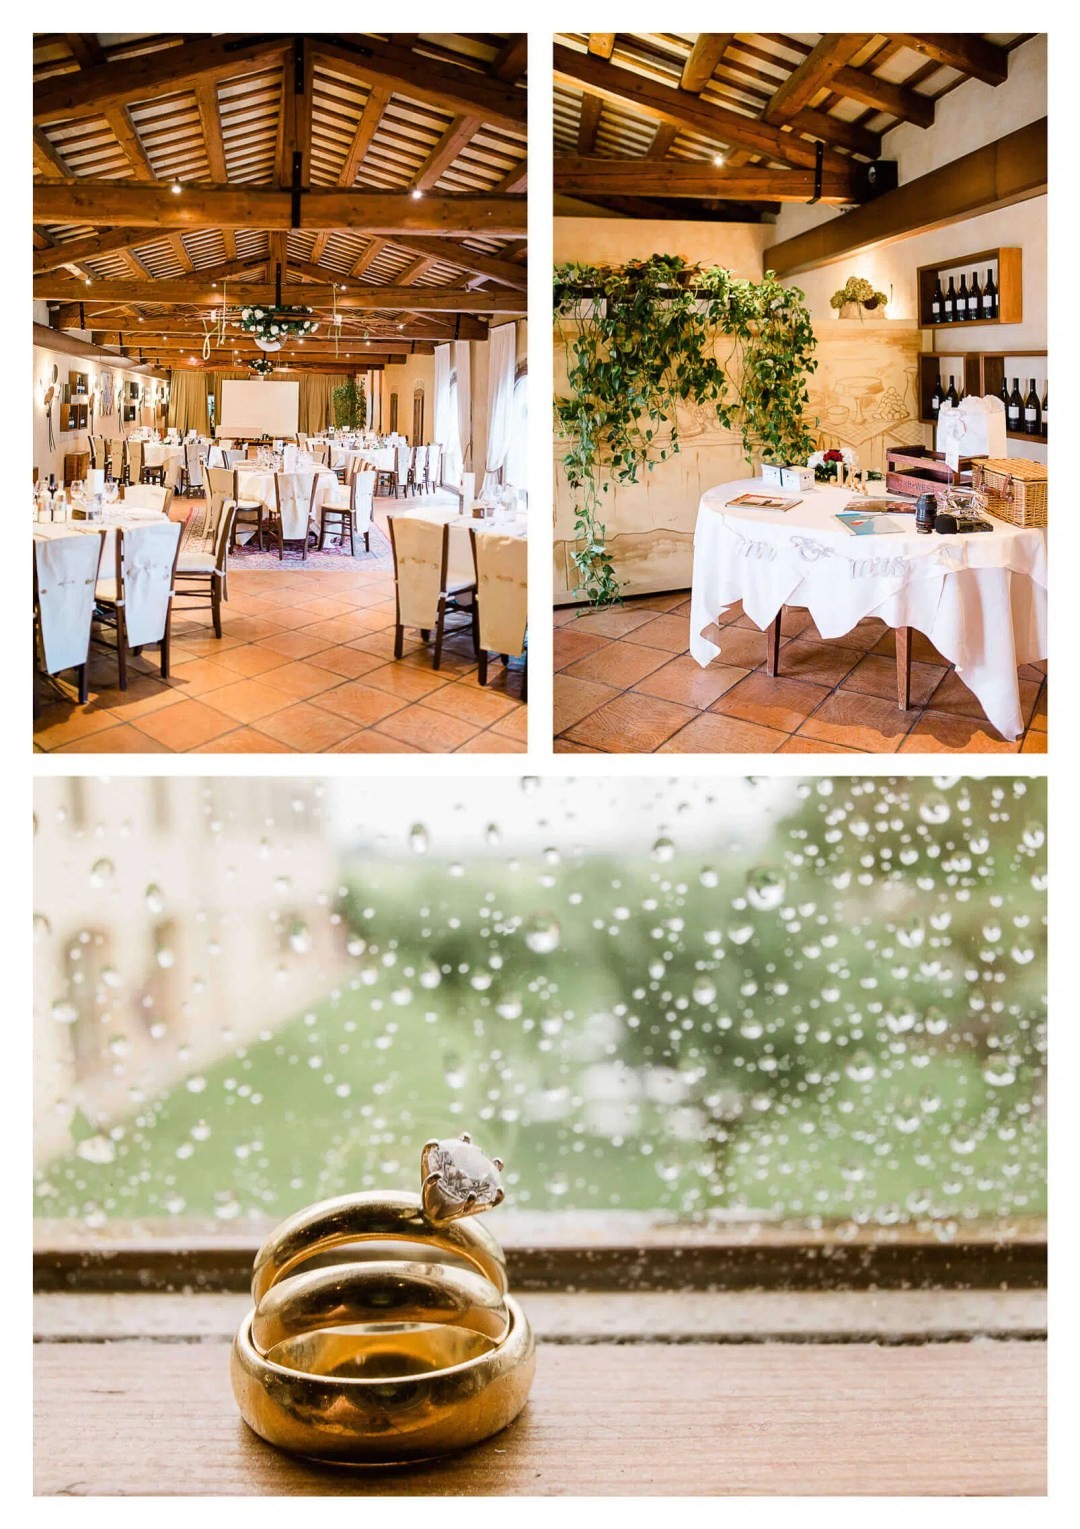 Fossa Mala wedding breakfast decor for reception | Pordenone destination photographer